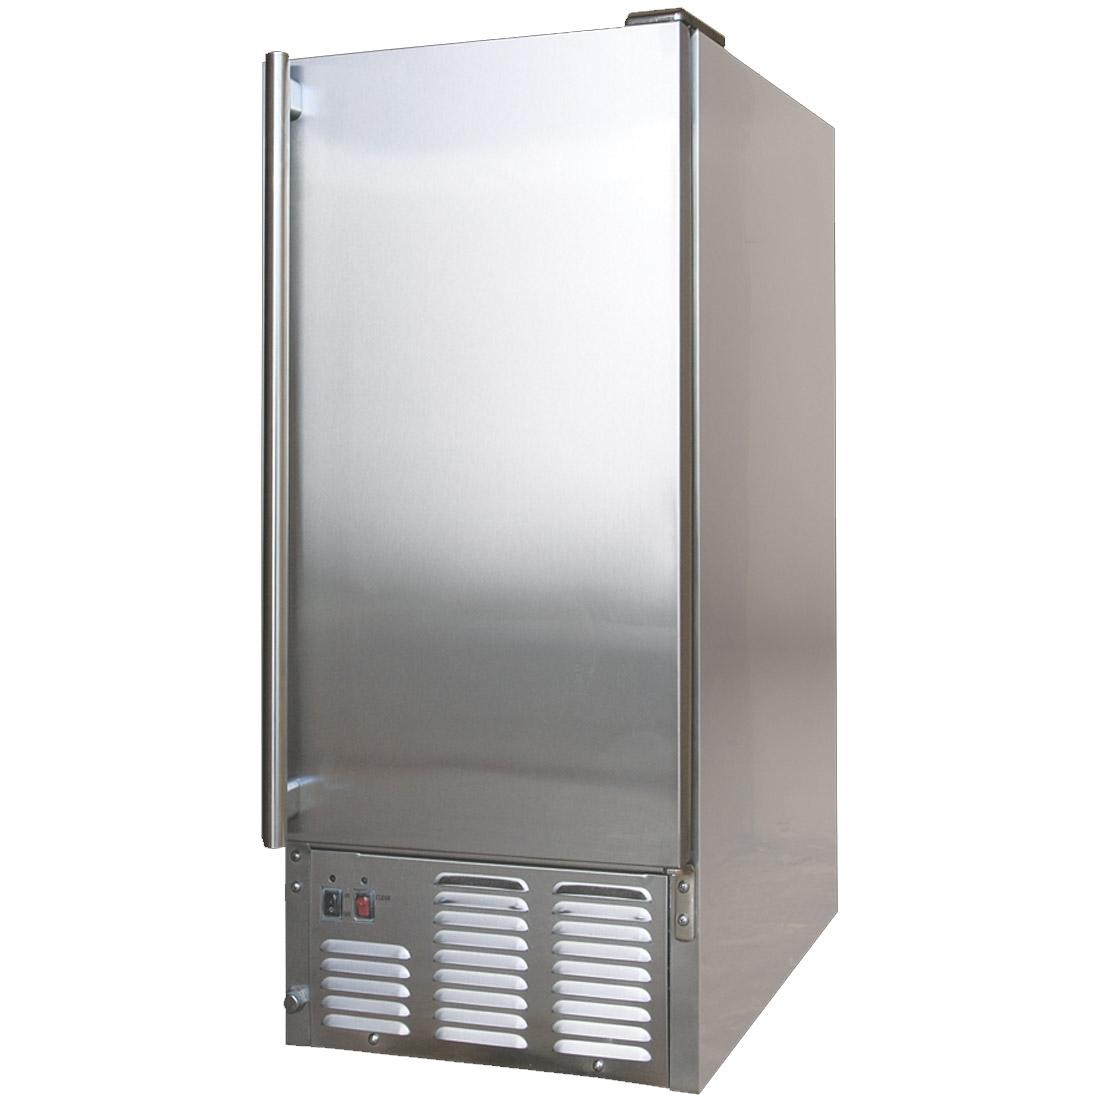 Cal Flame BBQ10700 Outdoor Compact Ice Maker - Stainless Steel